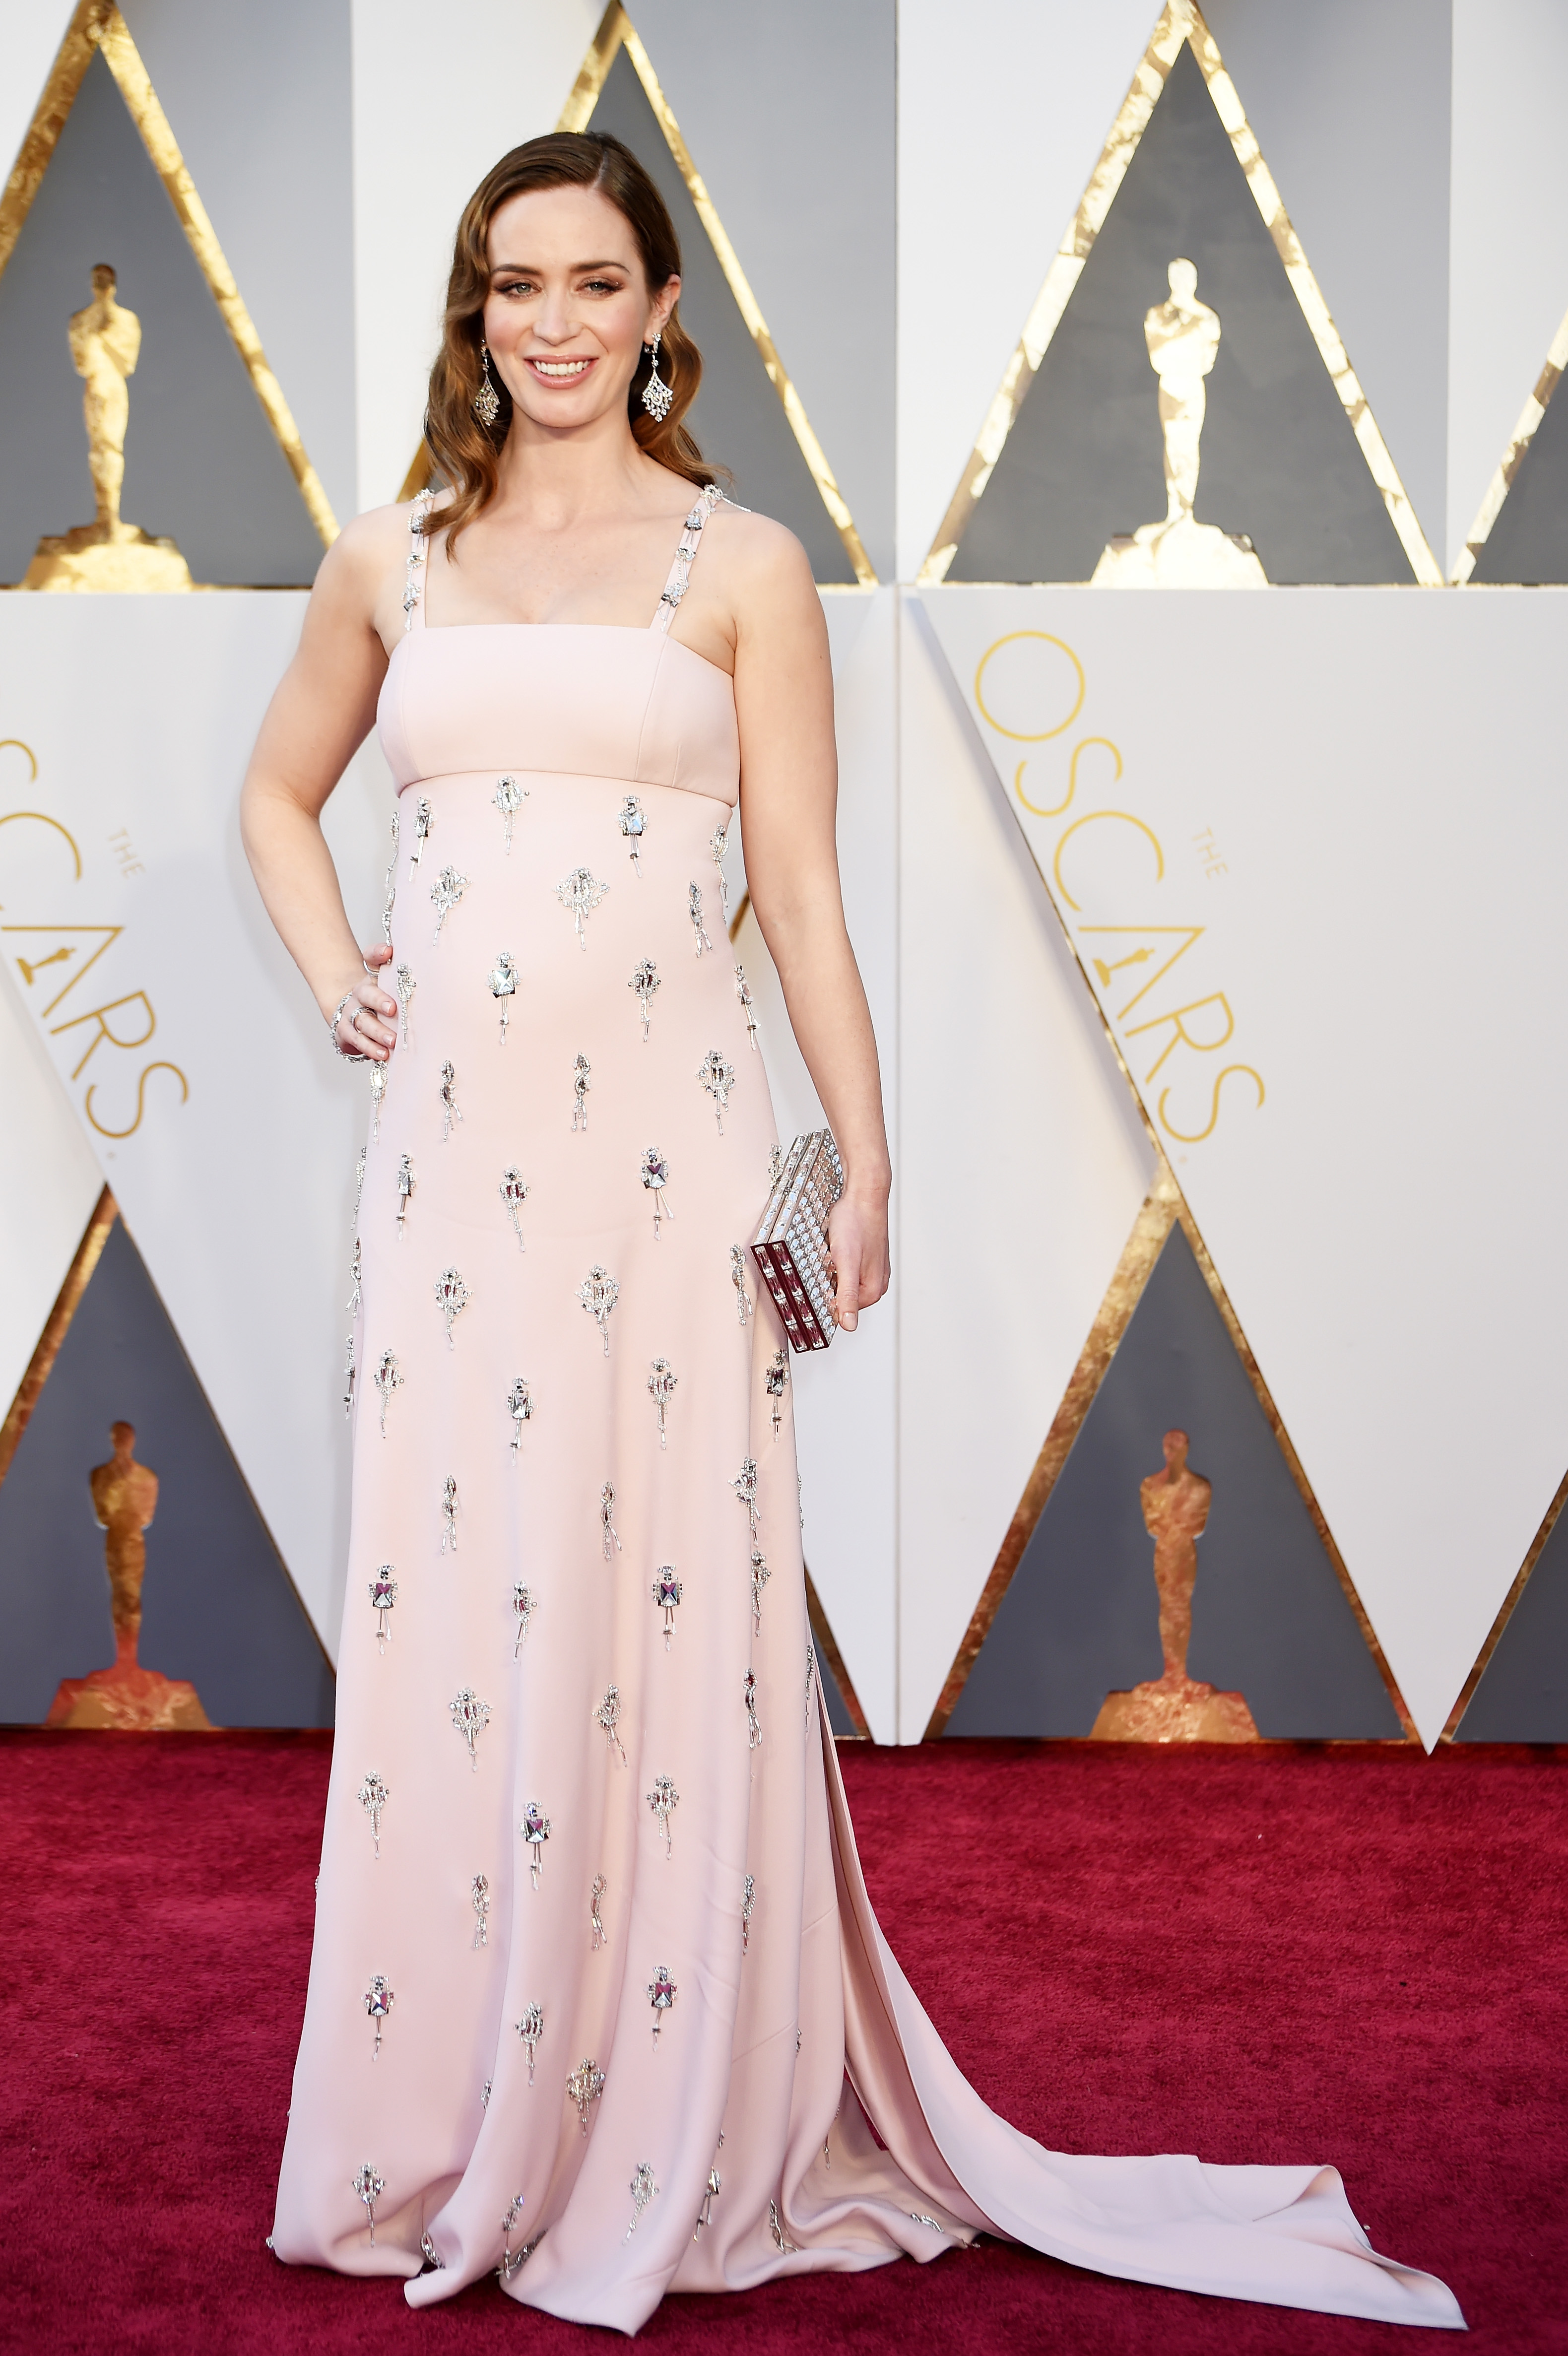 Emily Blunt attends the 88th Annual Academy Awards on Feb. 28, 2016 in Hollywood, Calif.